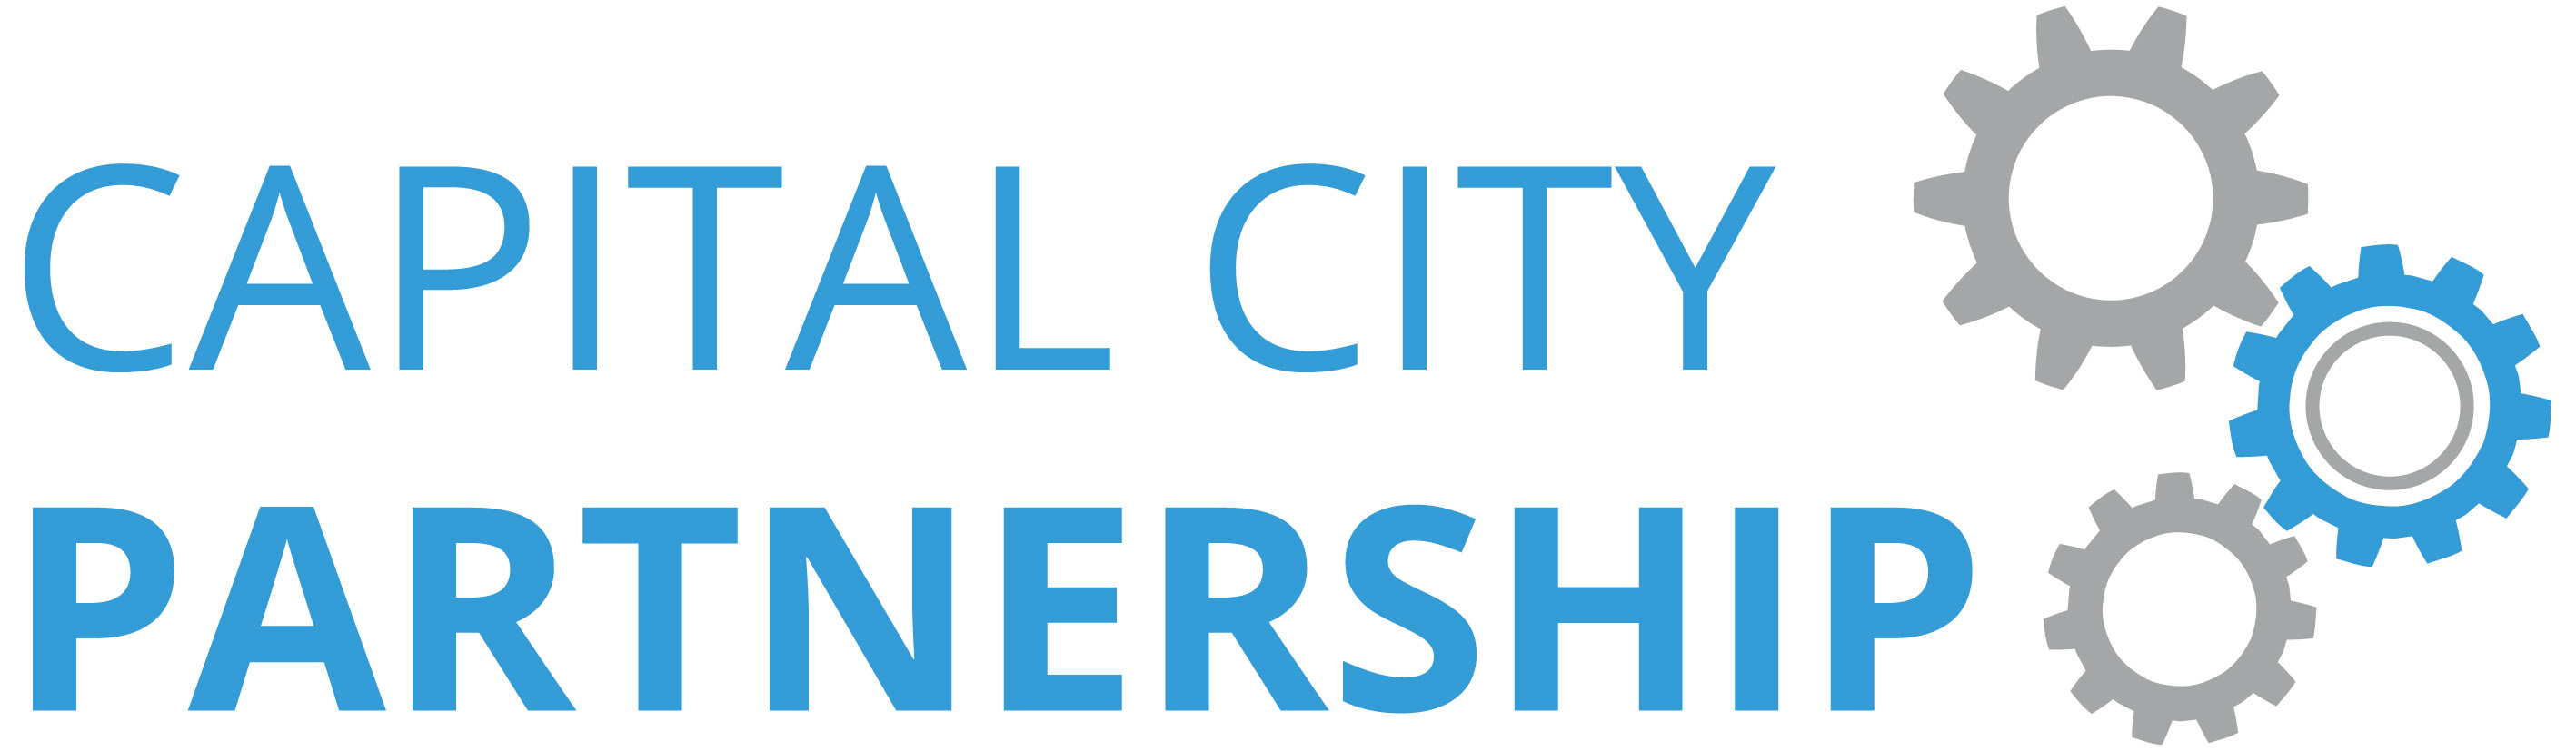 Capital City Partnership